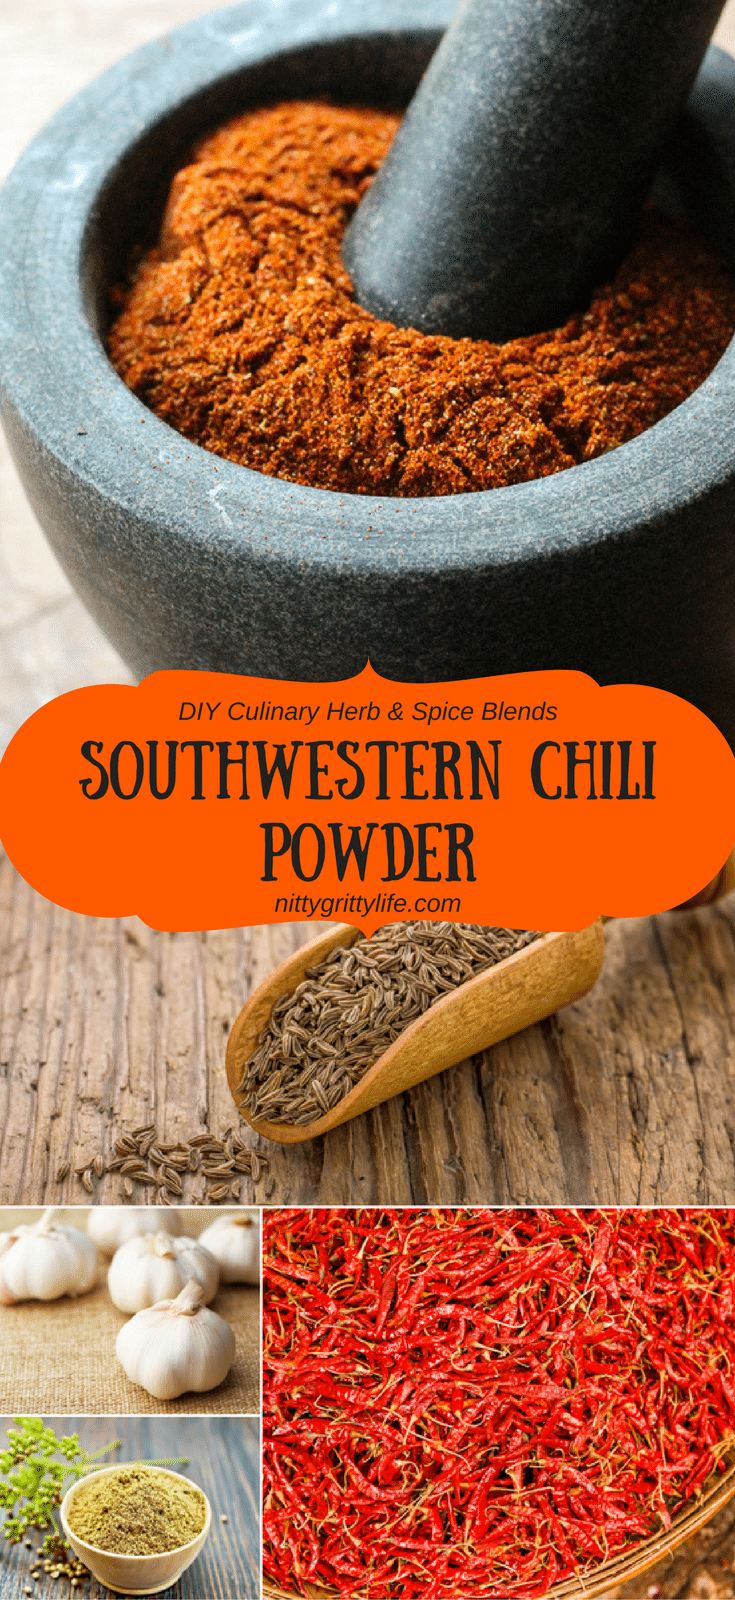 Spicy, earthy, and smoky, this DIY southwestern chili powder is the perfect flavor for south of the border soups, stews, grilled meats, and, of course, tacos.Spicy, earthy, and smoky, this DIY southwestern chili powder is the perfect flavor for south of the border soups, stews, grilled meats, and, of course, tacos.